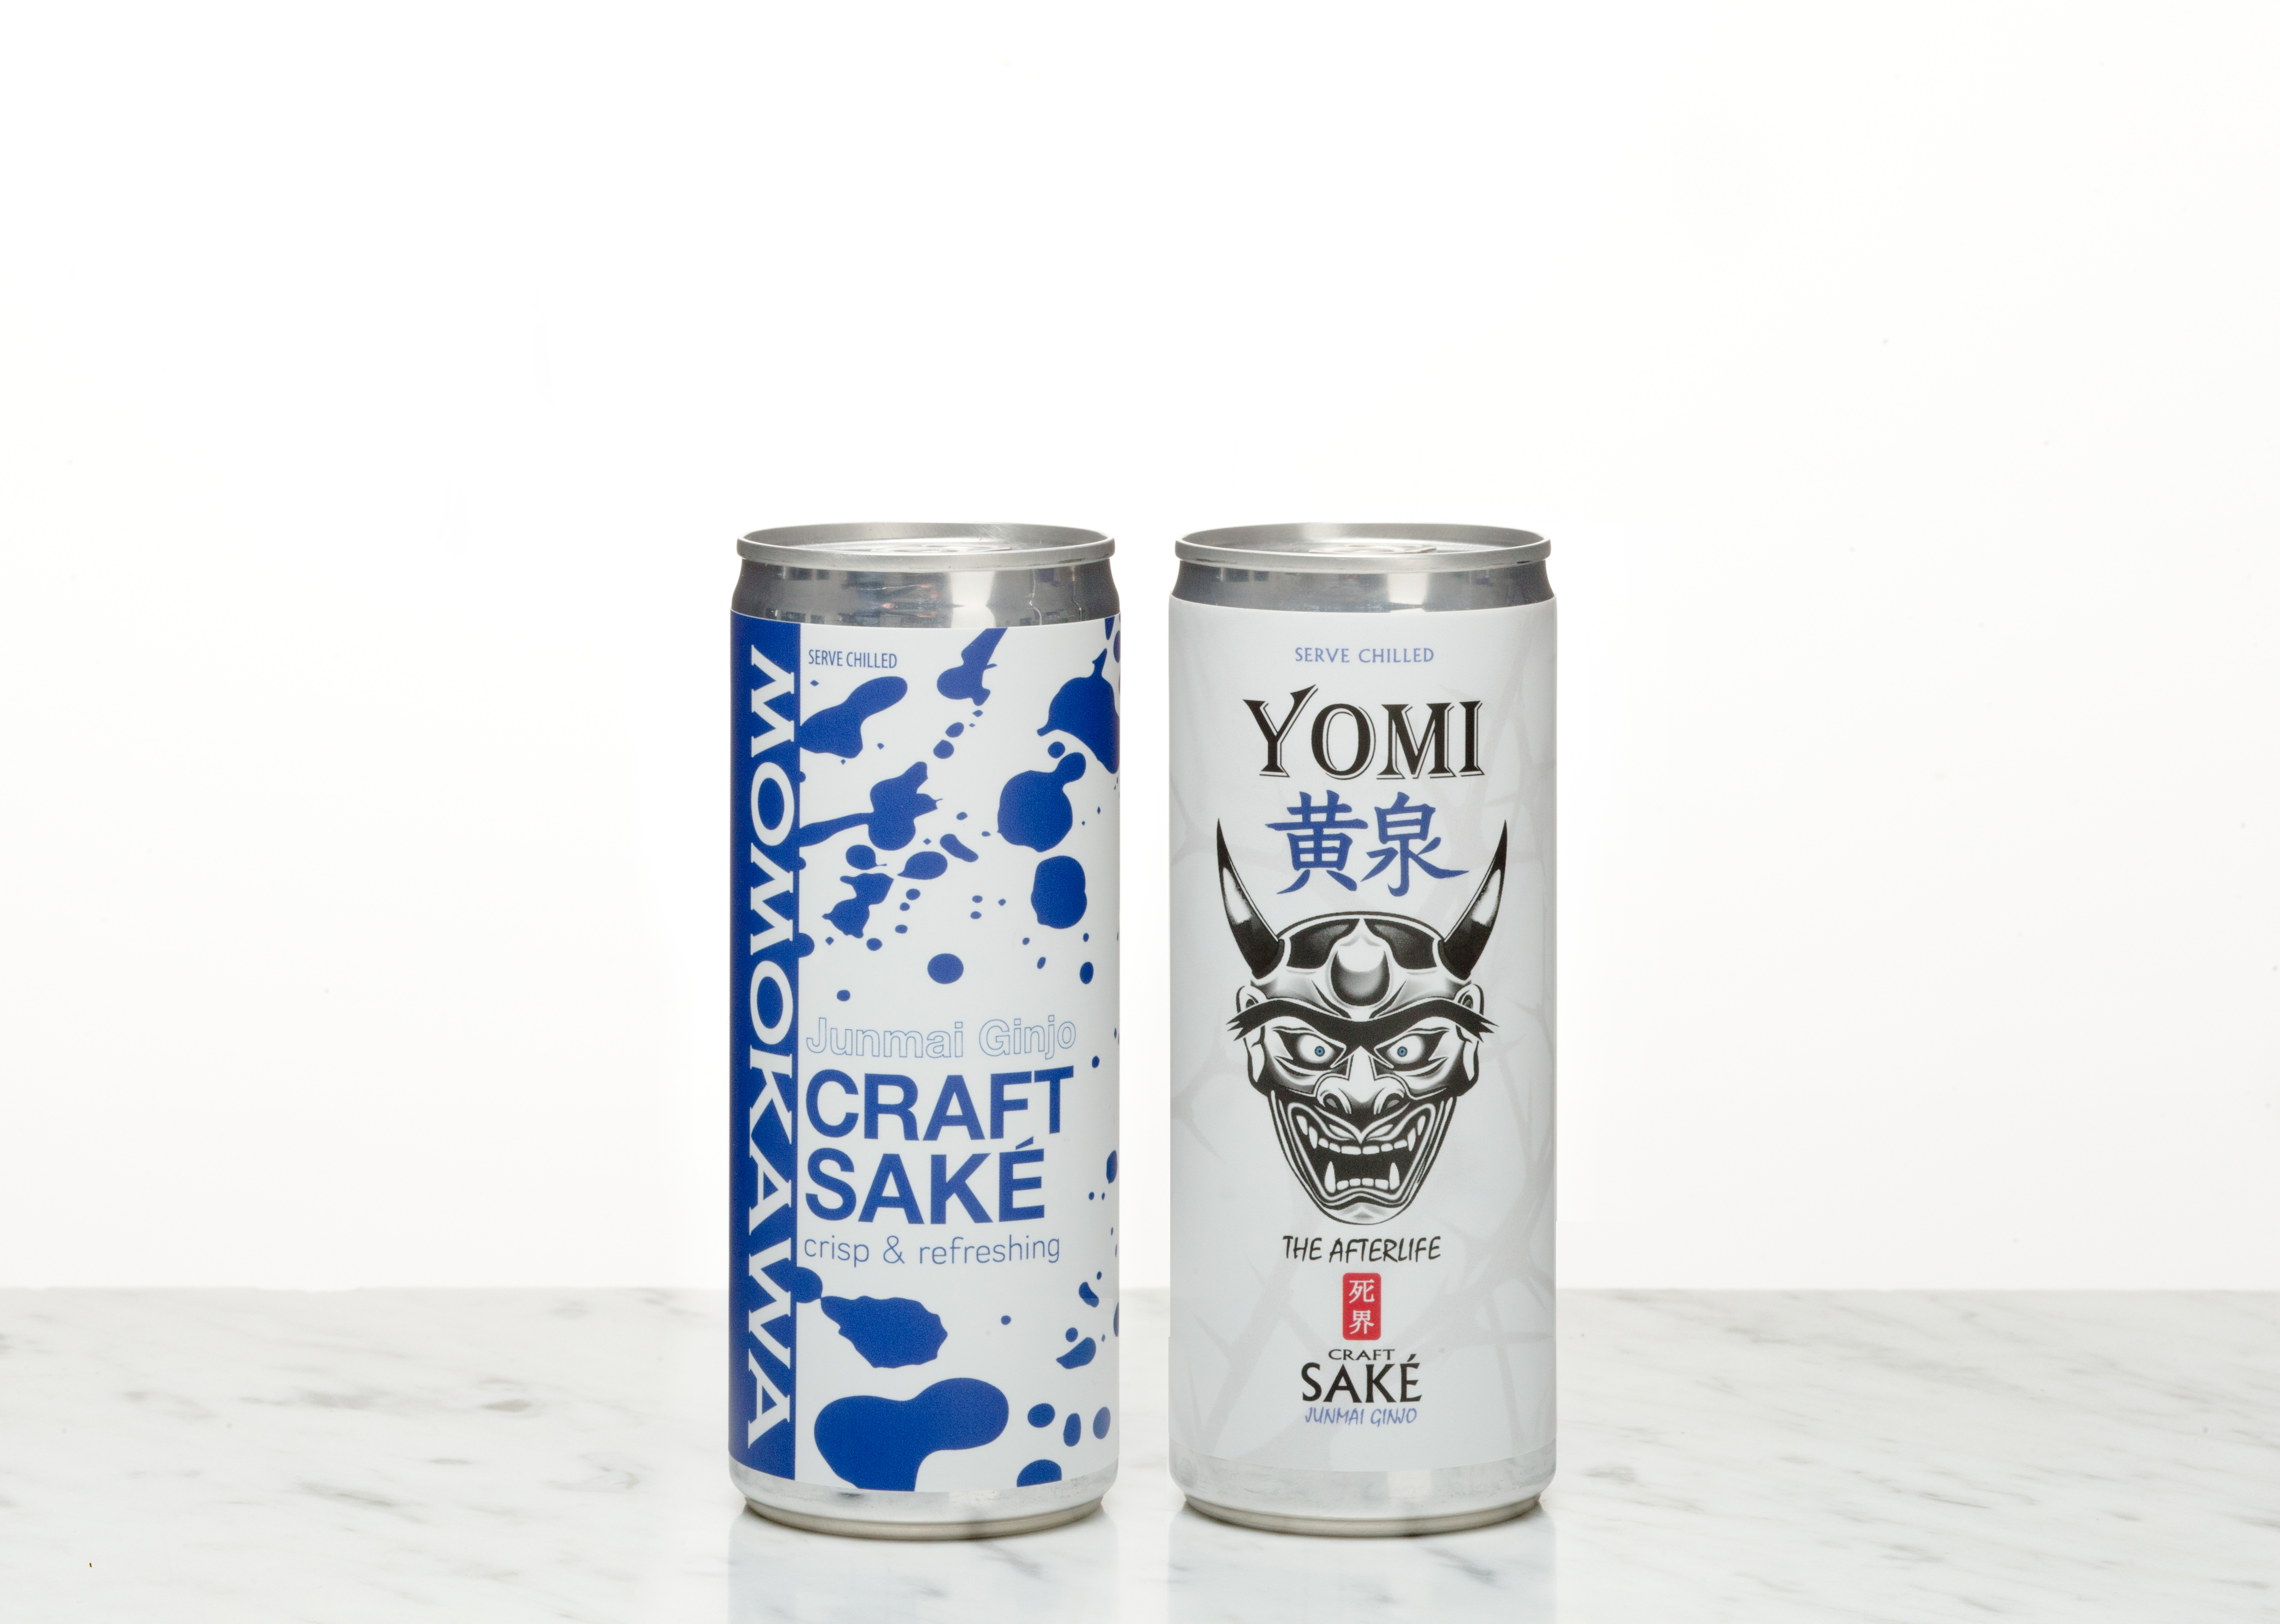 image of Momo and Yomi canned sake courtesy of Sake One